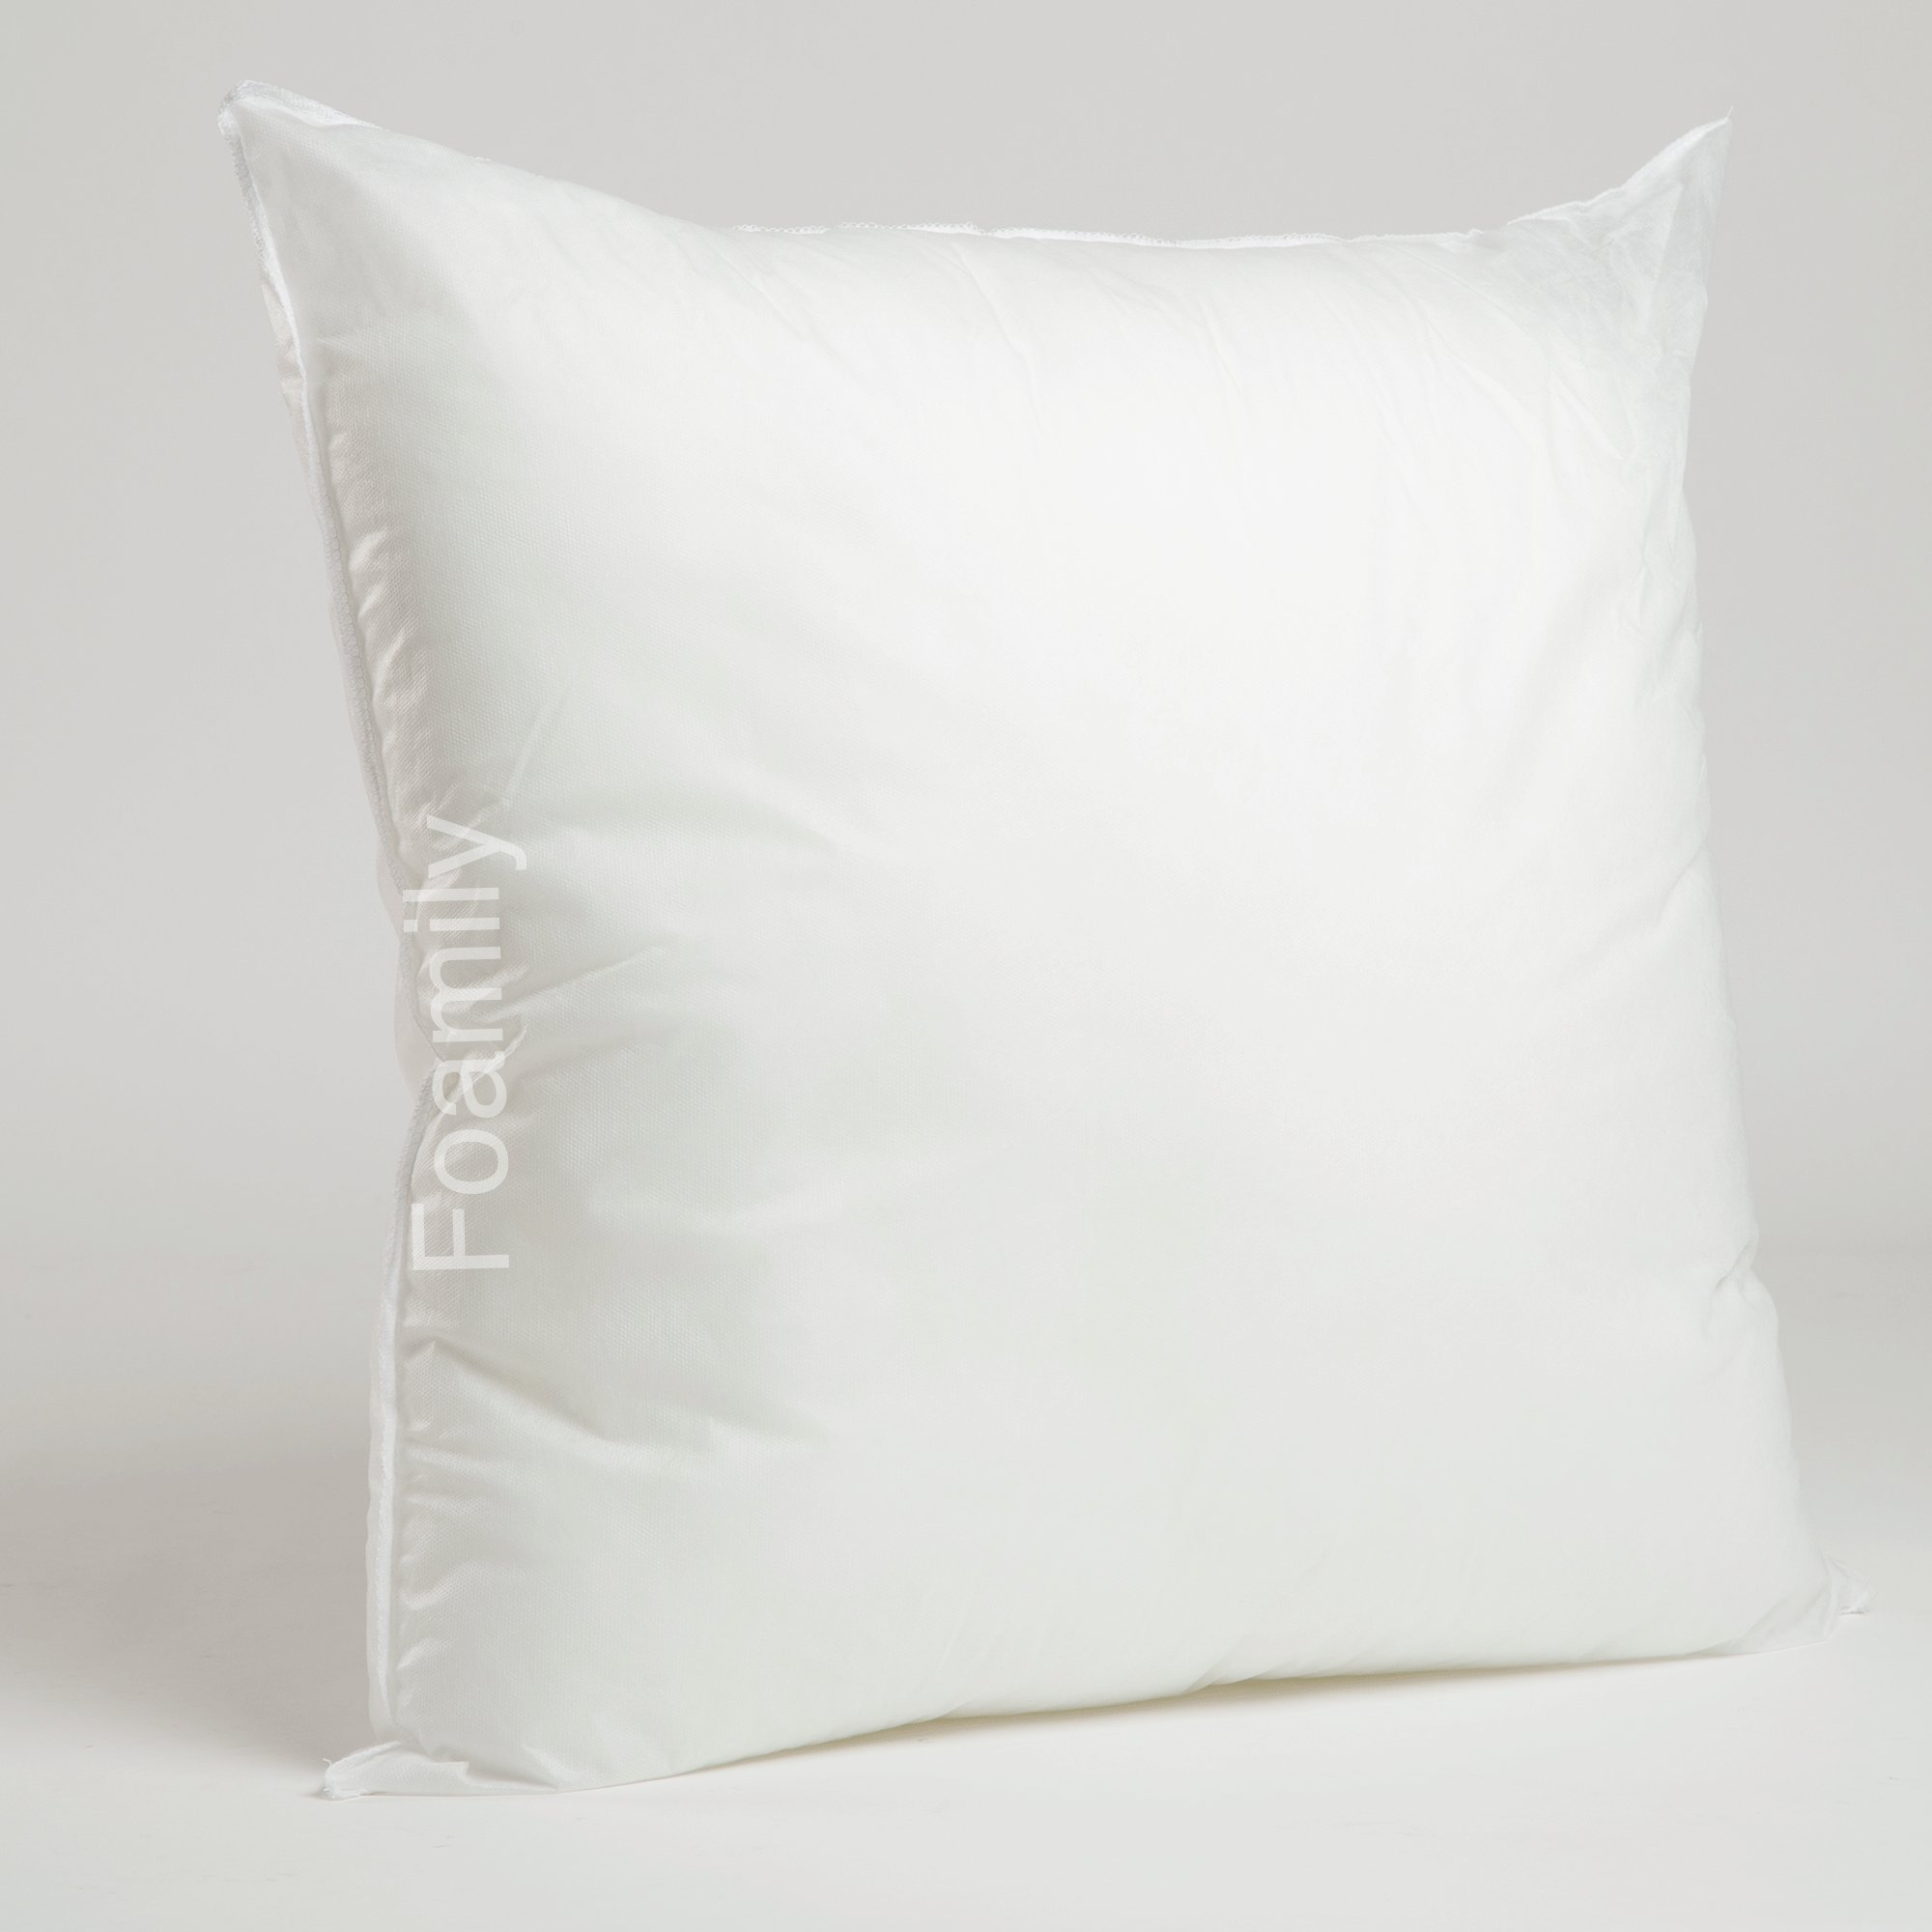 Foamily Premium Hypoallergenic Stuffer Pillow Insert Sham Square Form Polyester, 26'' L X 26'' W, Standard/White by Foamily